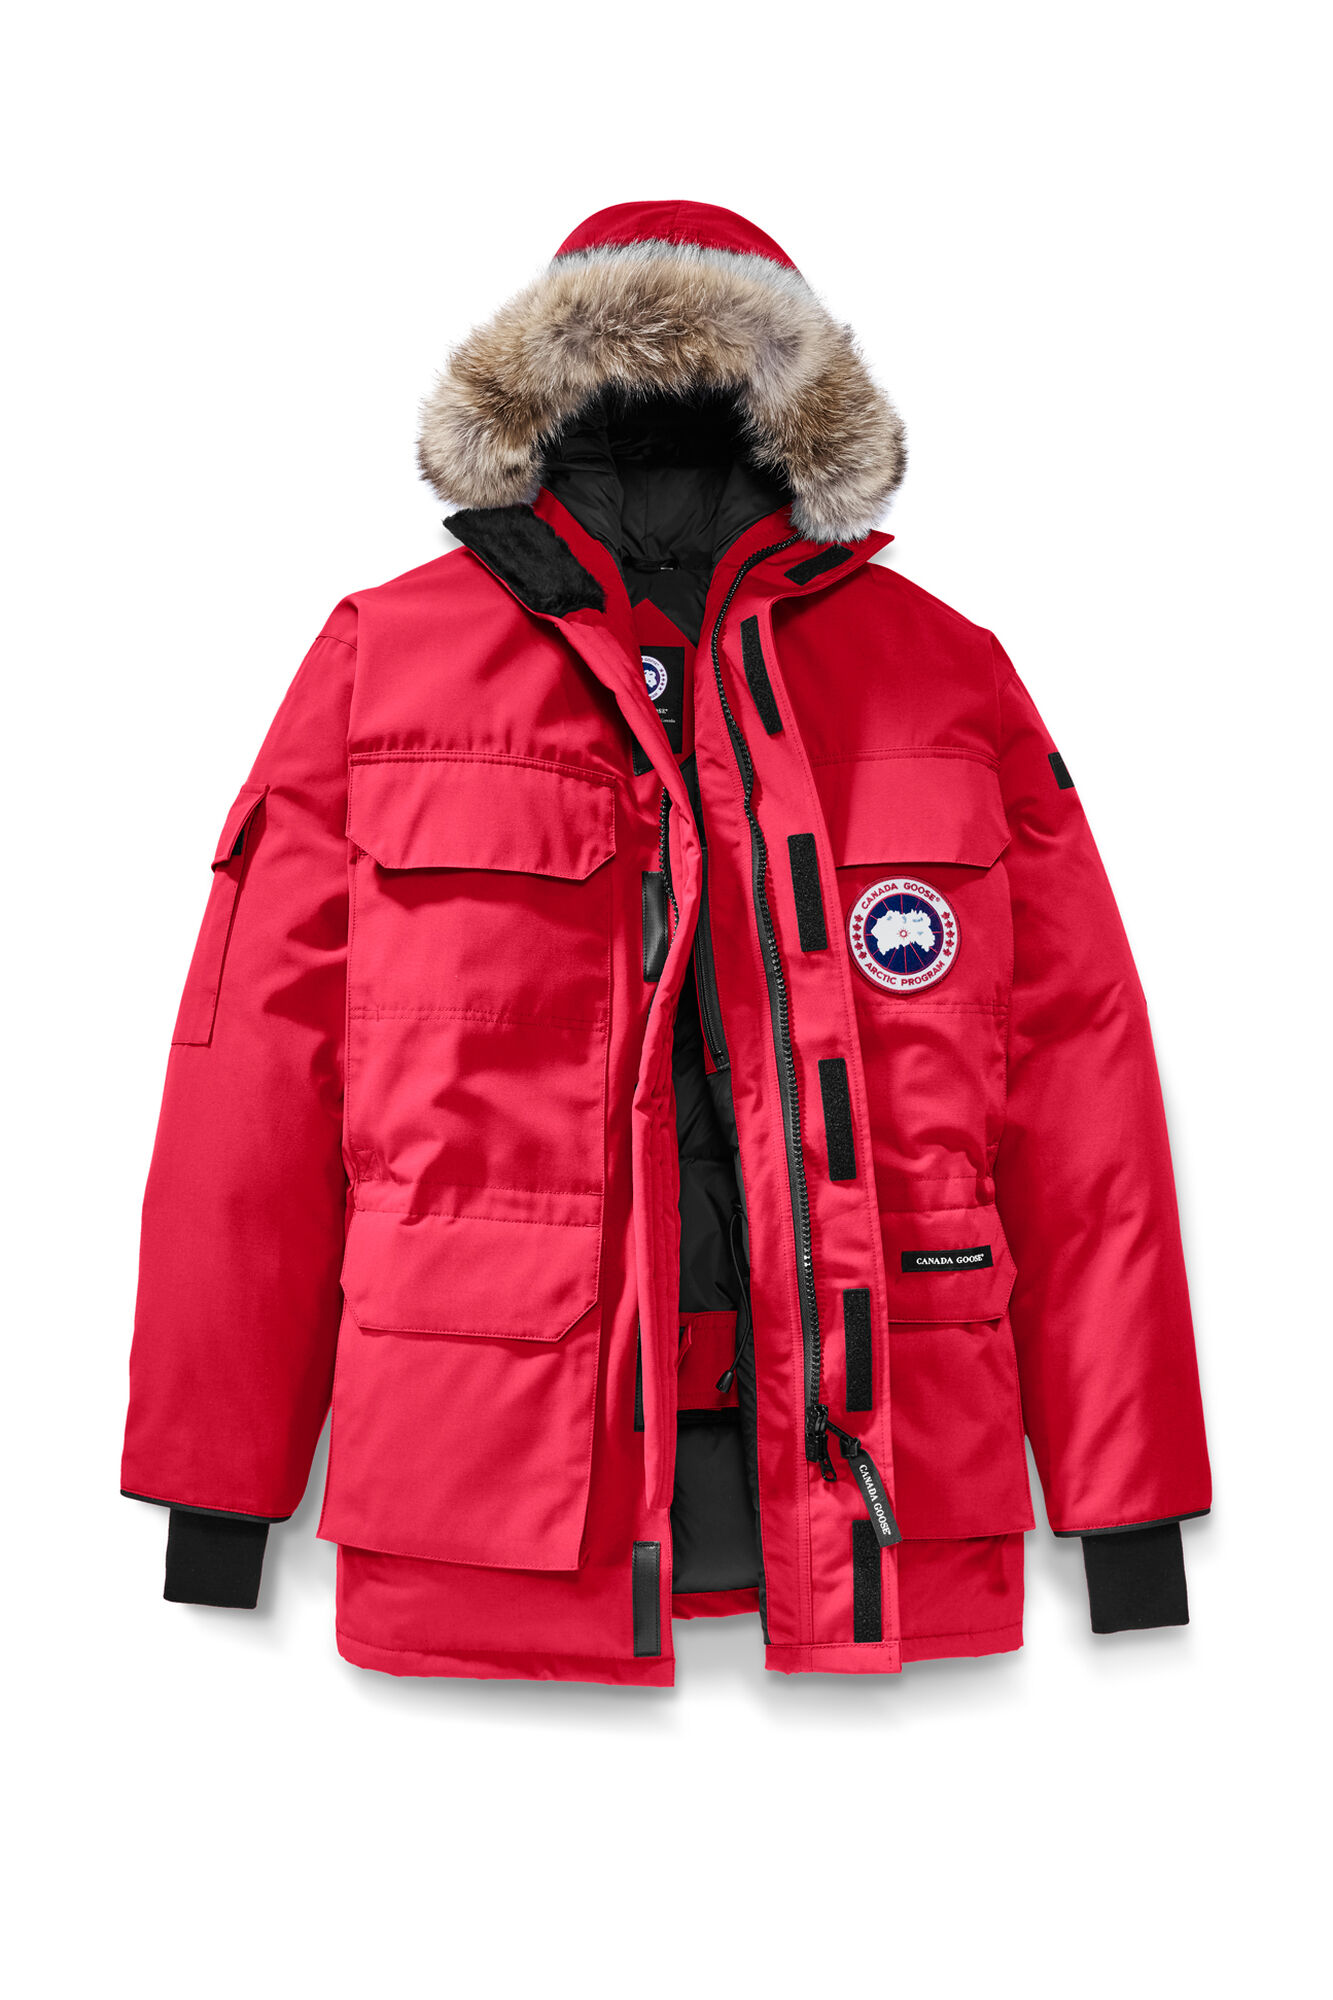 Canada Goose vest outlet discounts - Men's Arctic Program Expedition Parka | Canada Goose?